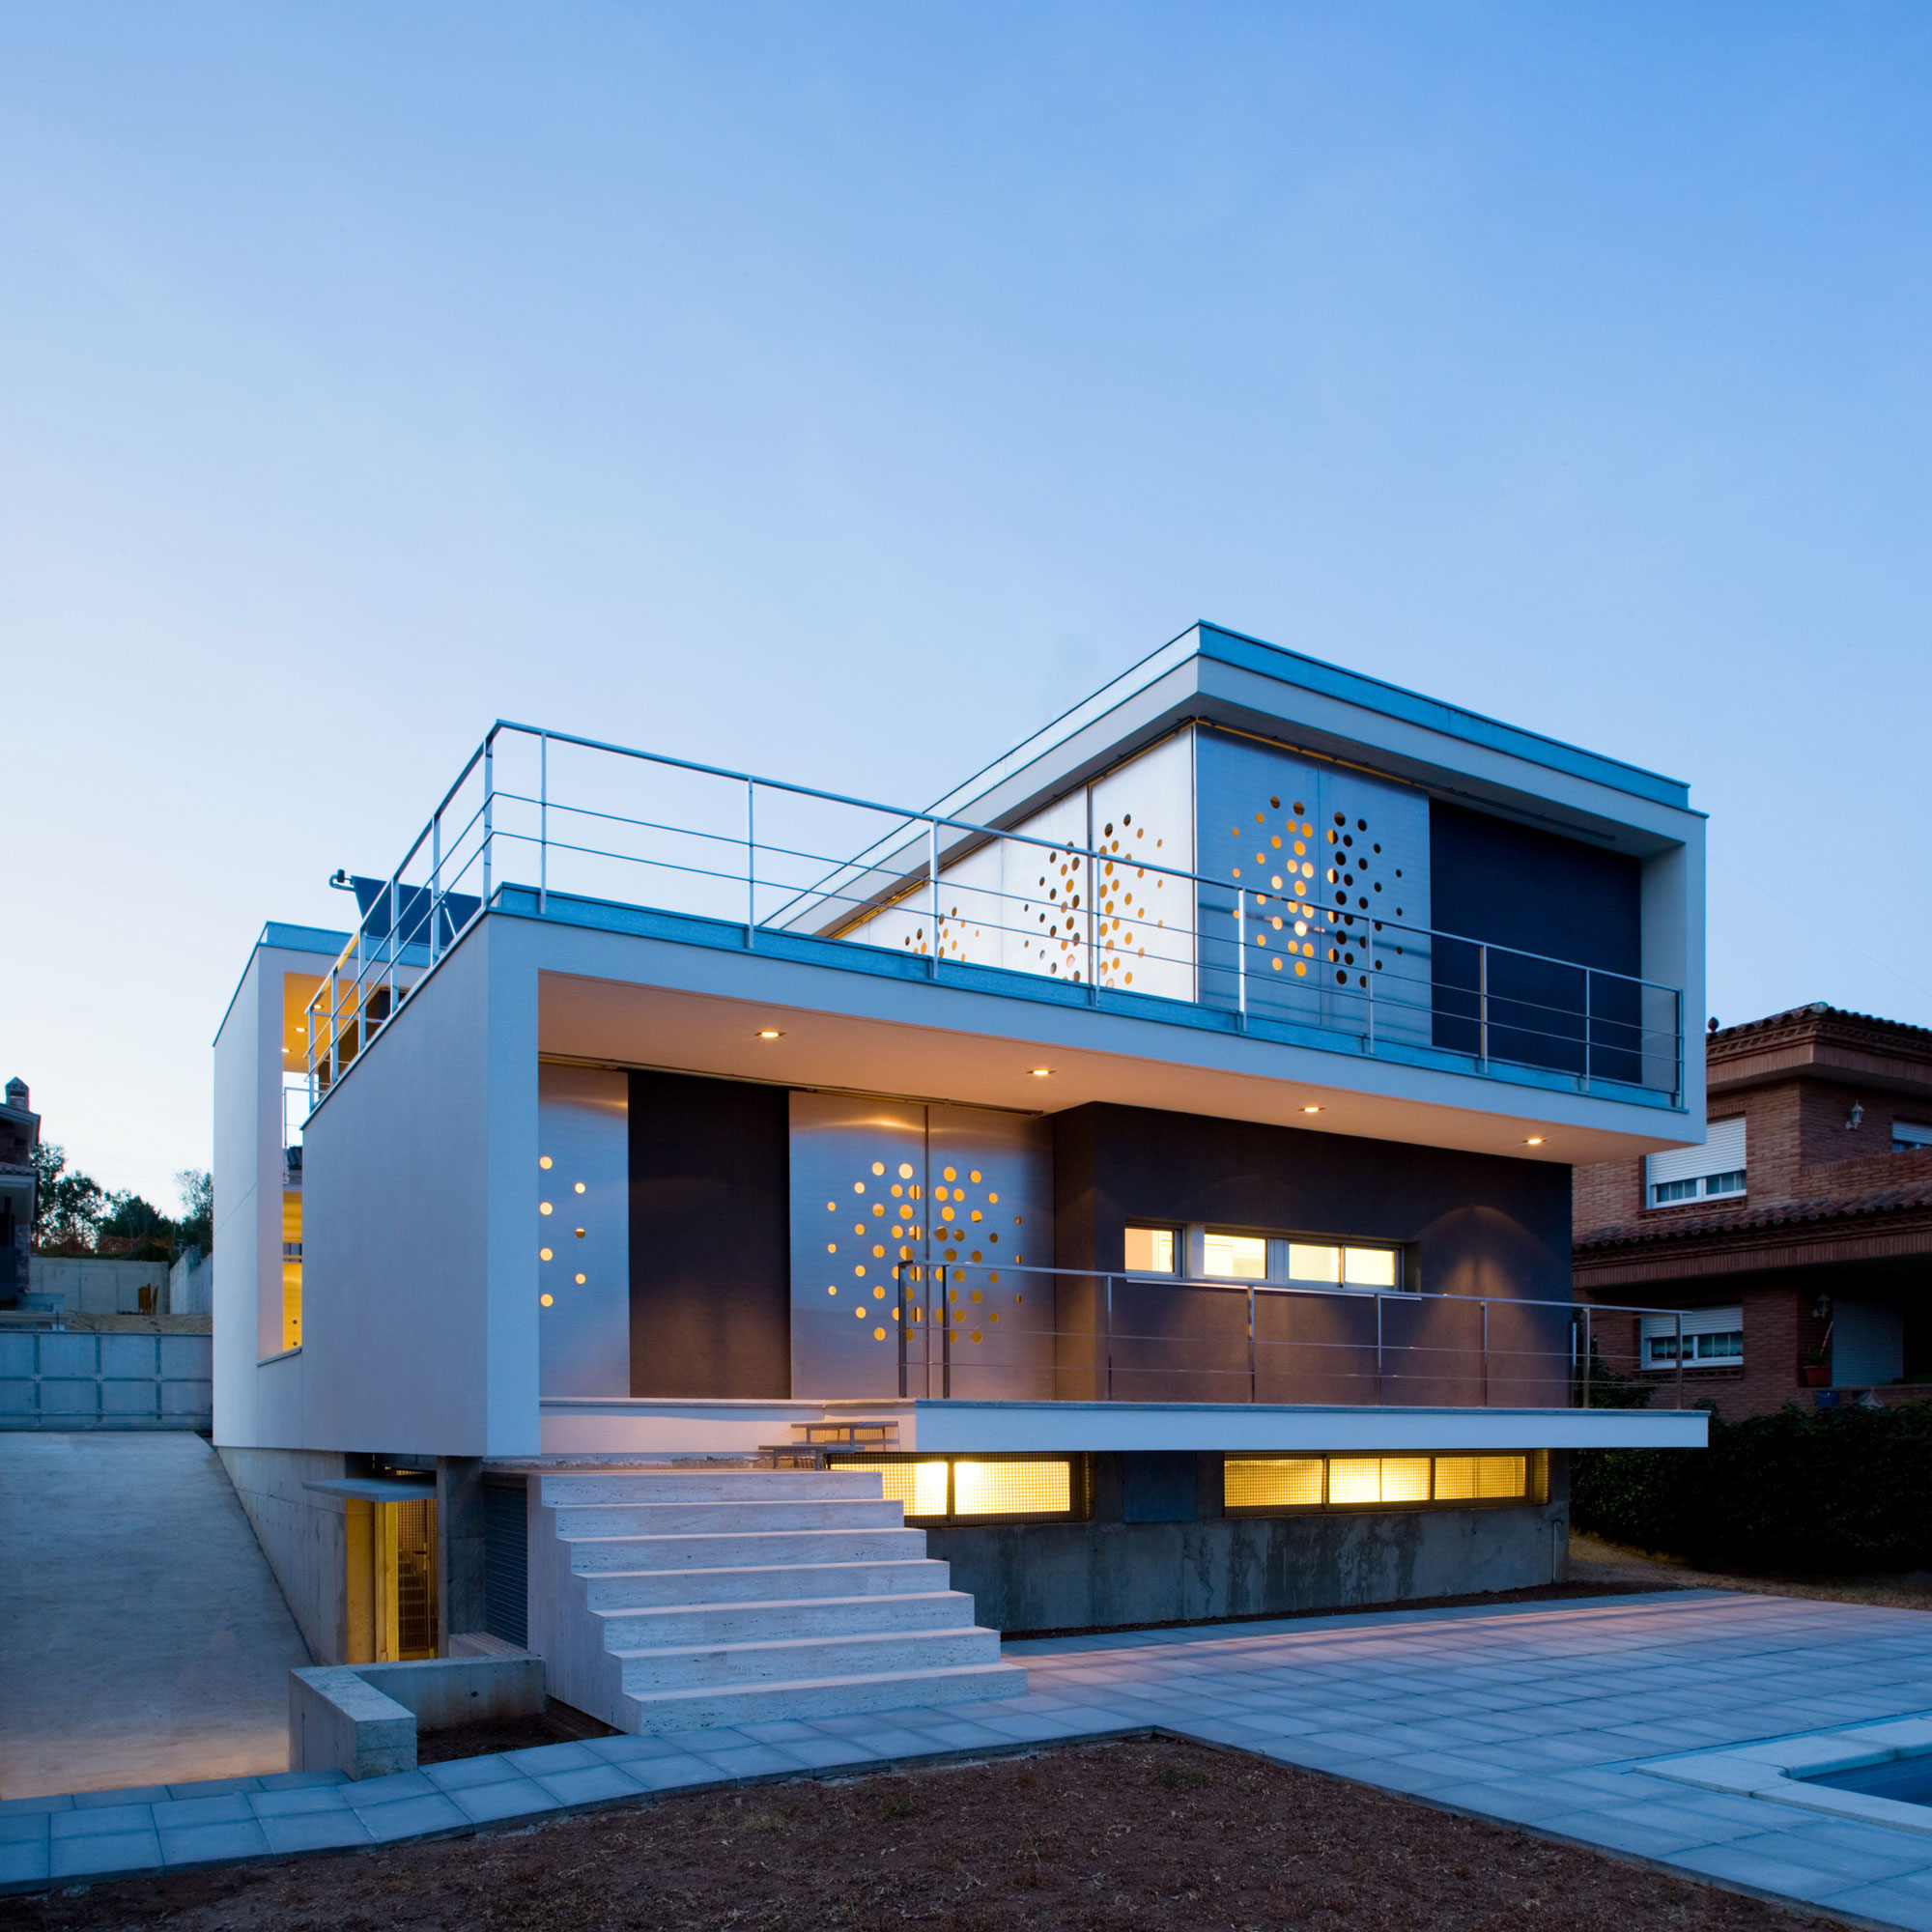 backyard-modern-house-design-wth-iron-railings-yellow-lighting-and-steel-wall-with-perforations-plus-terrace-with-cement-block-tiles